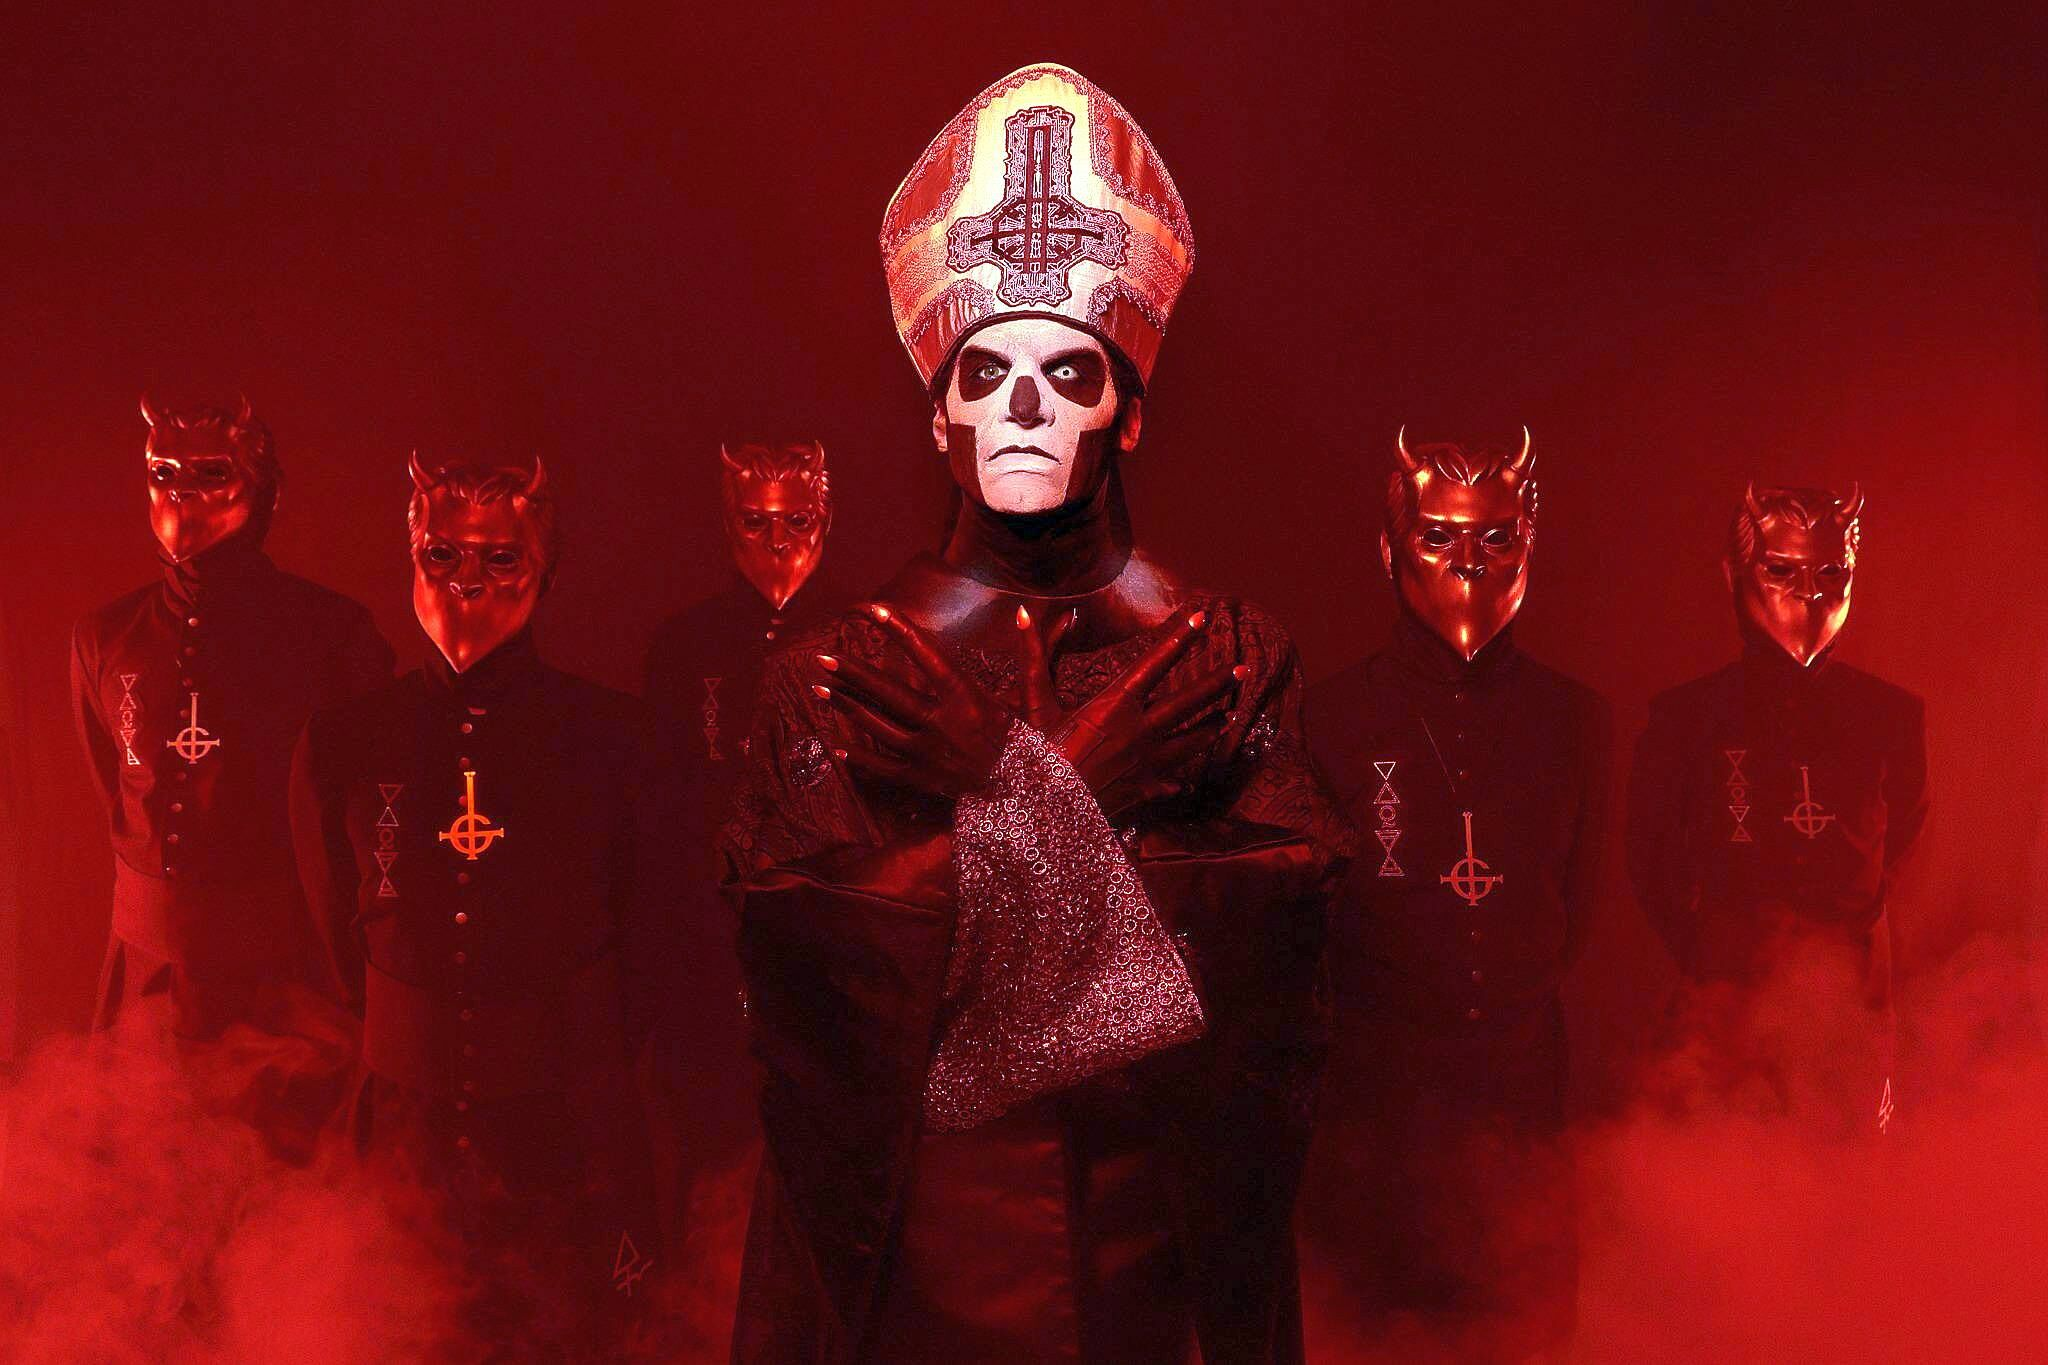 Tobias forge of ghost wins lawsuit spurned by former bandmates m4hsunfo